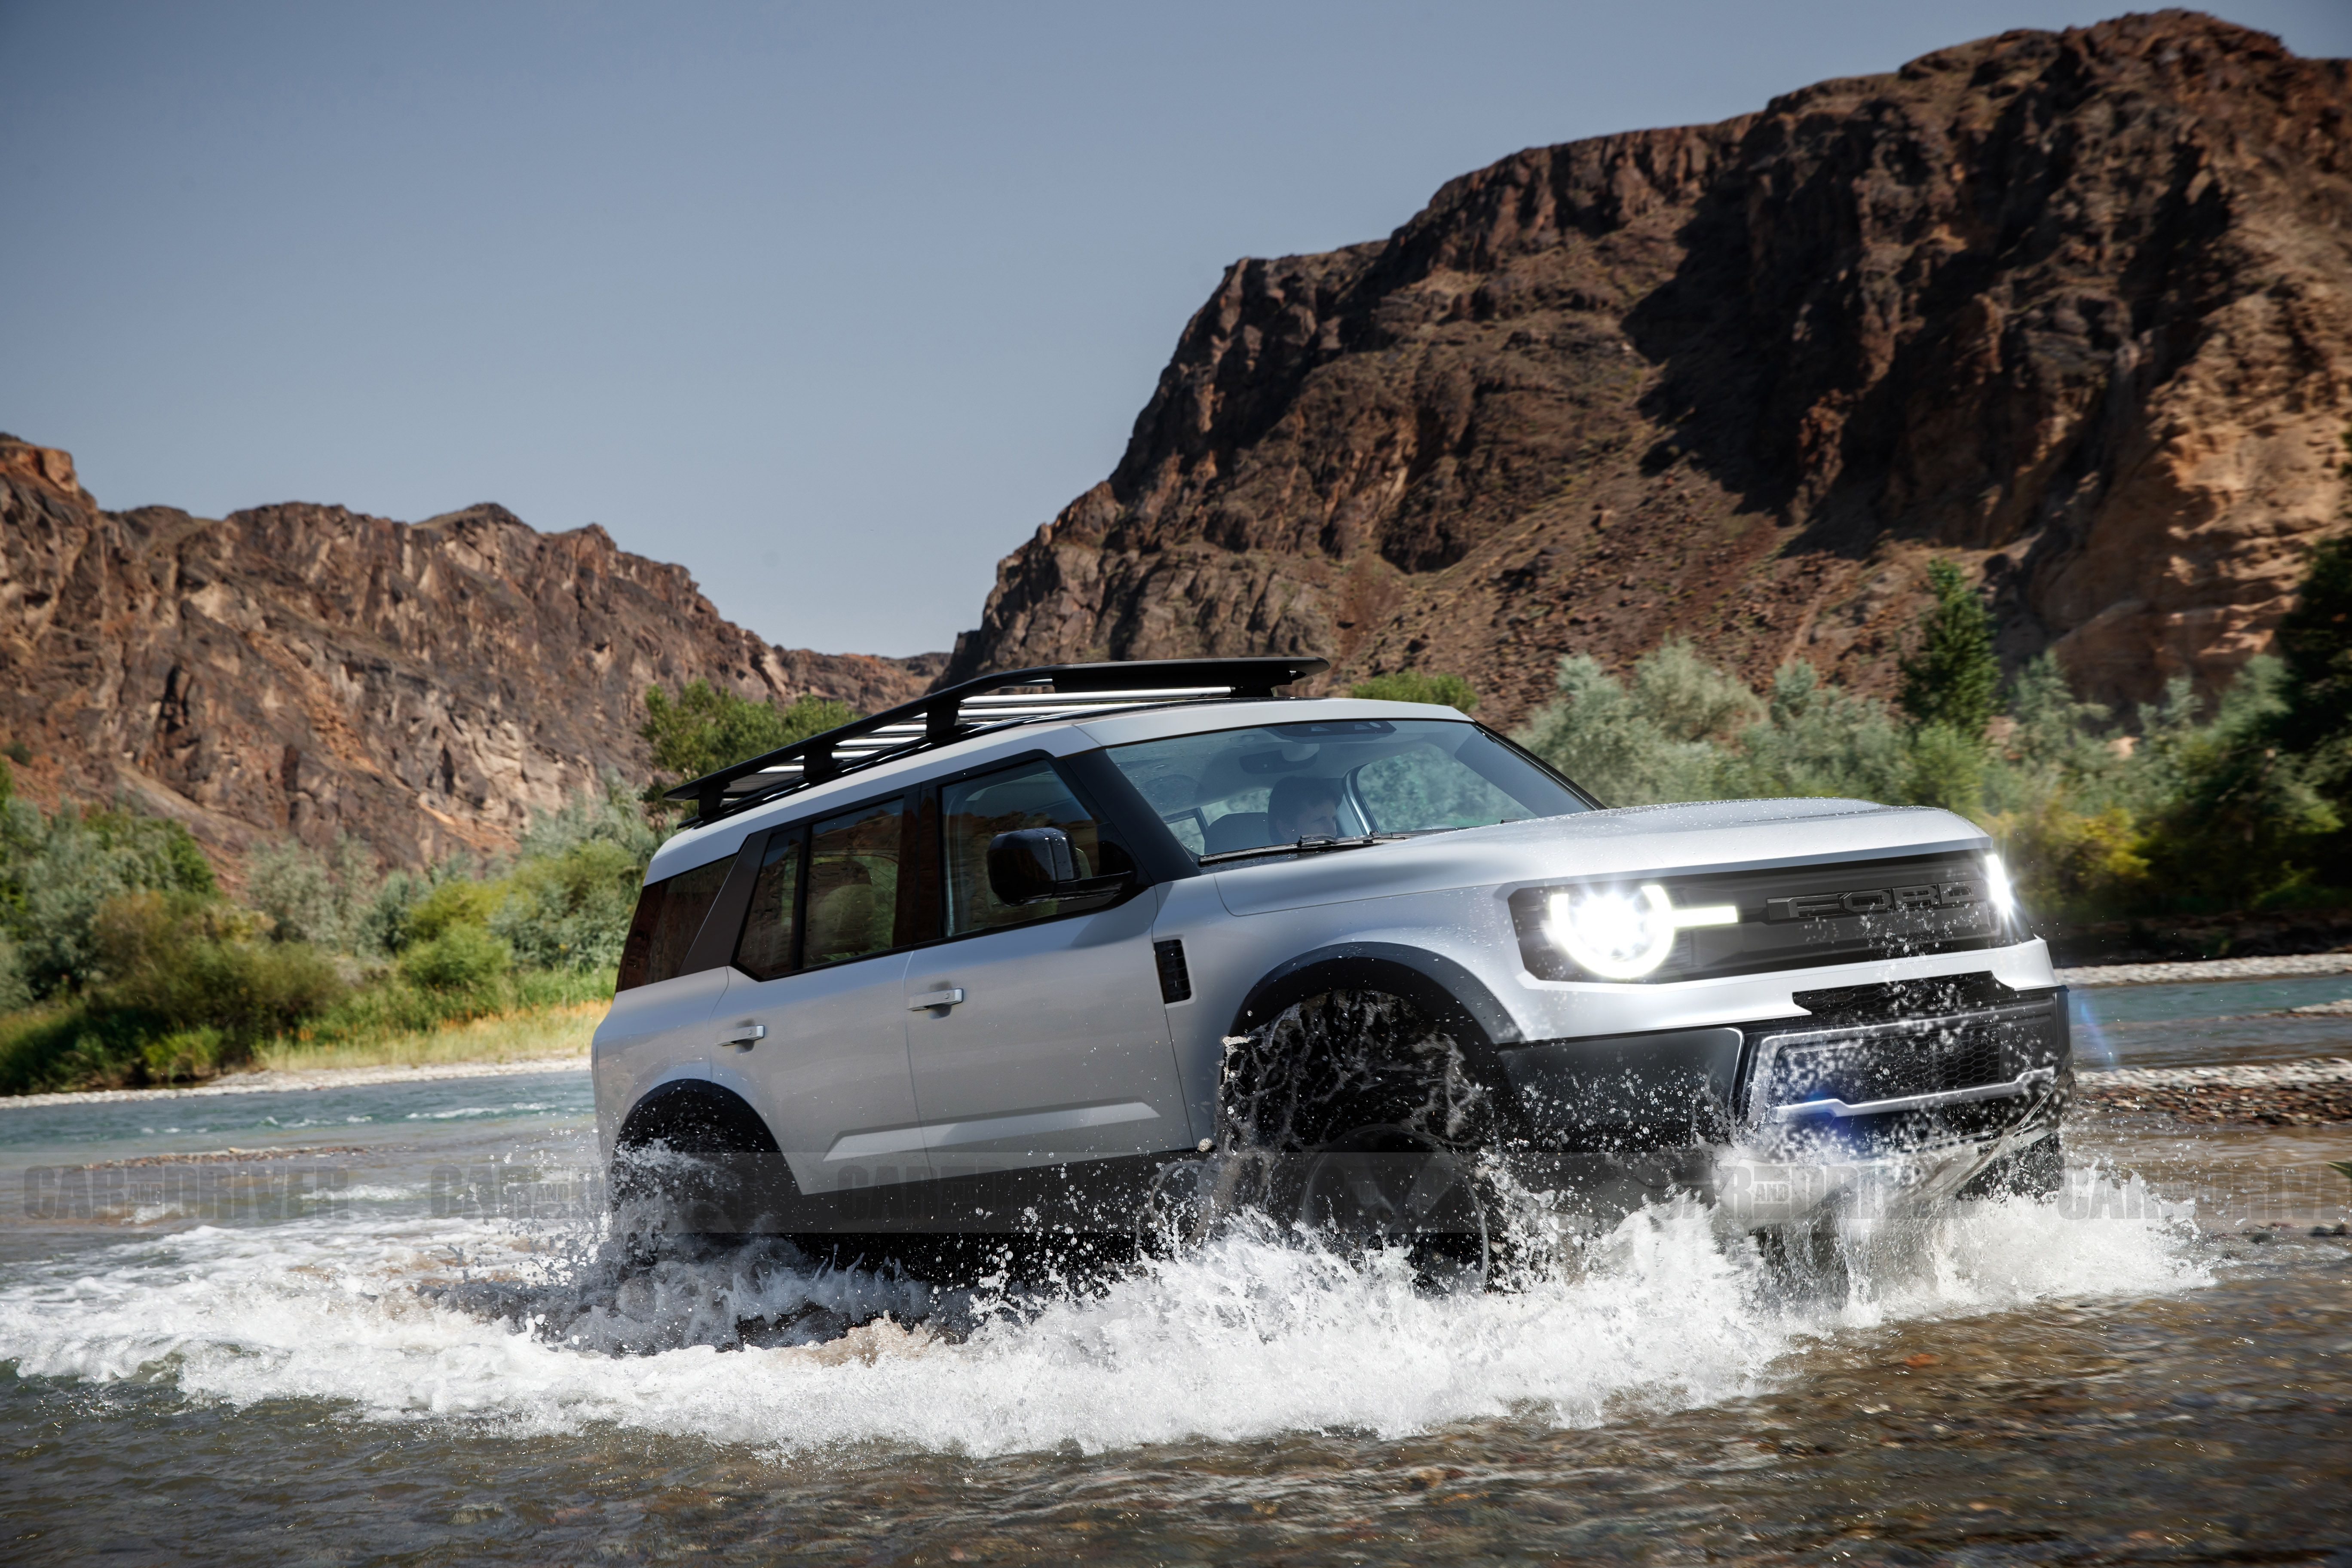 2021 Ford Bronco Sport What We Know So Far Ford bronco